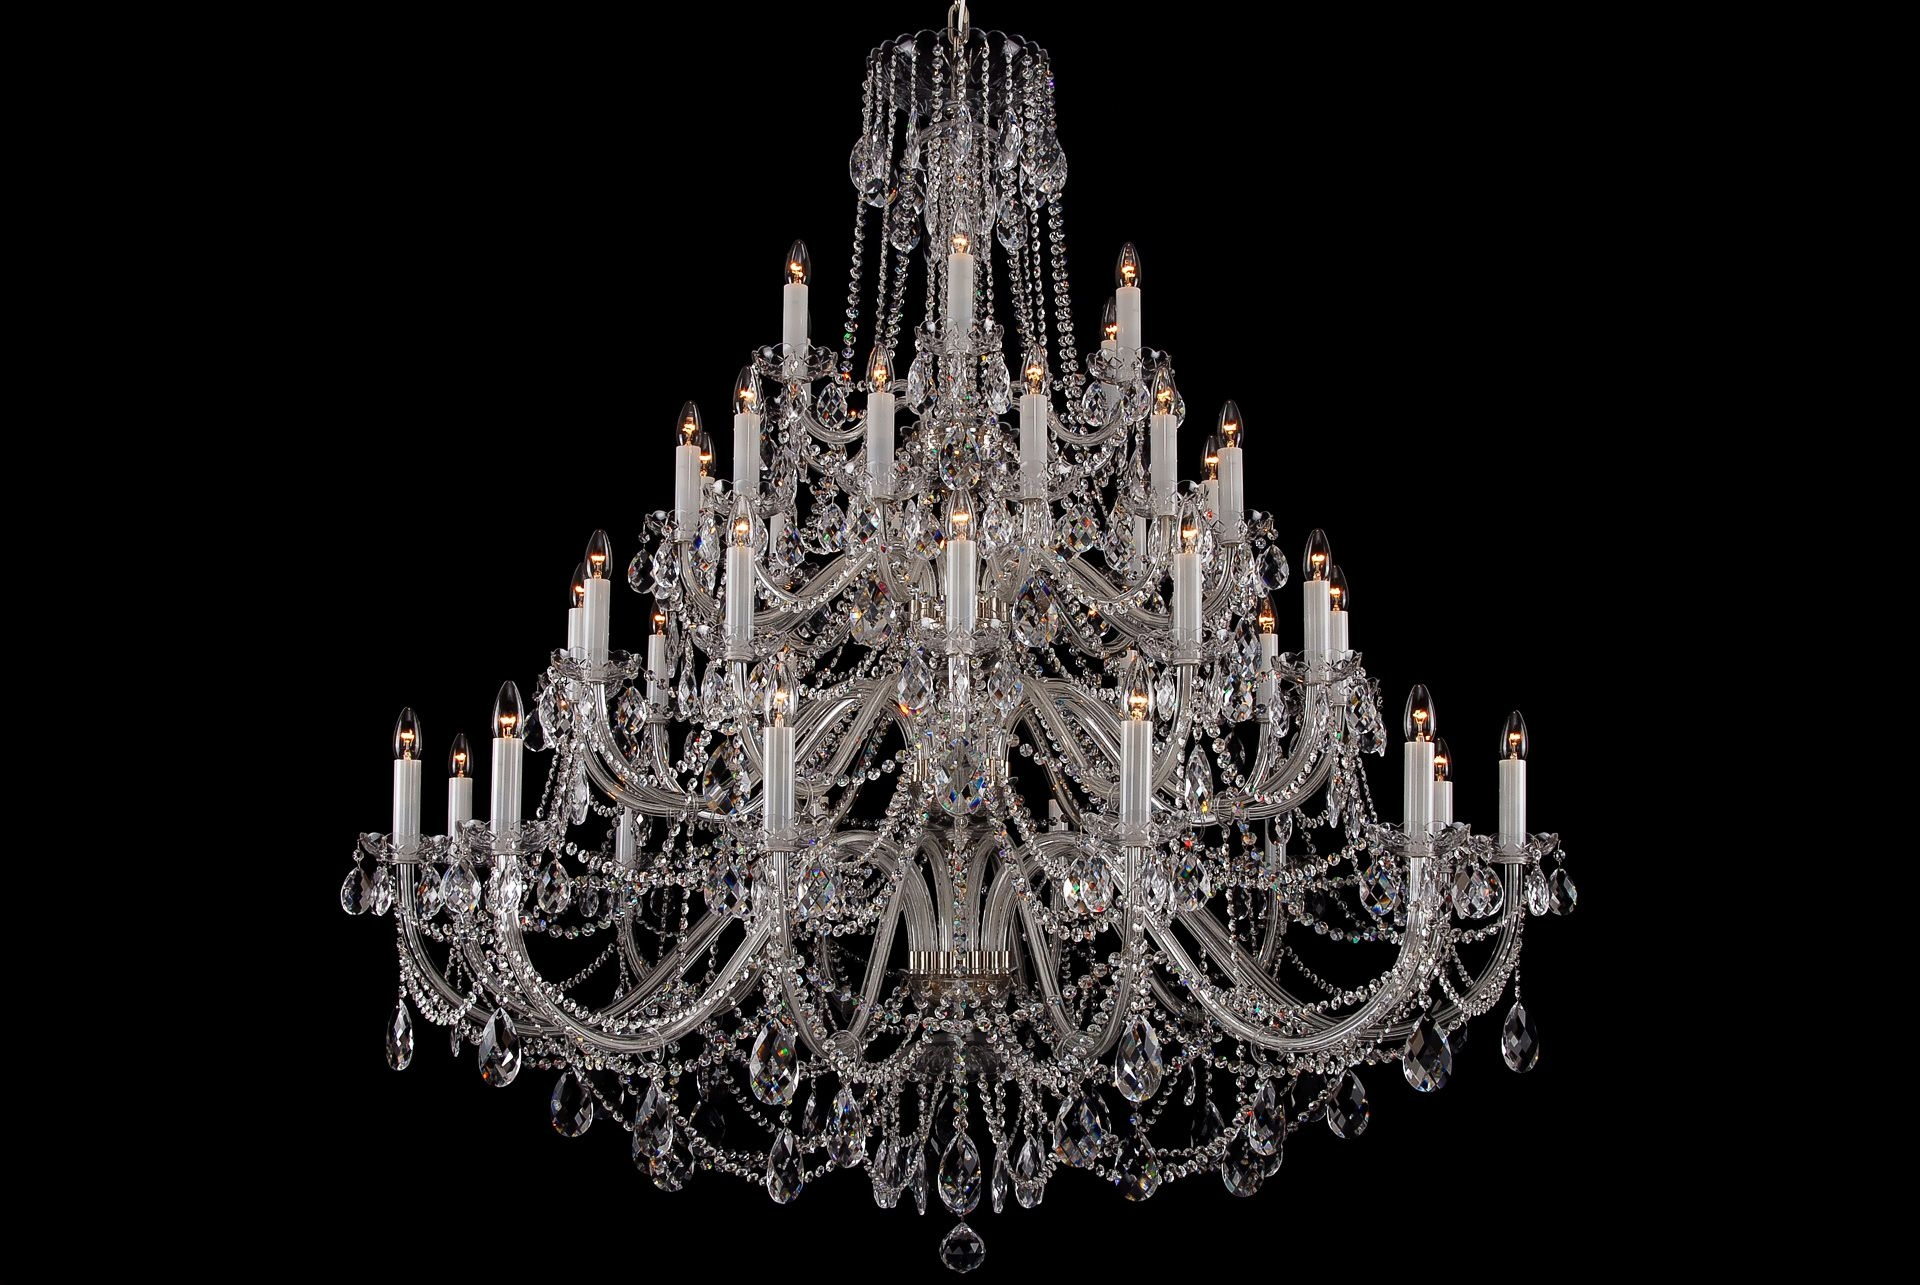 The Largest Clear Crystal Chandelier With Silver Coloured Metal Pertaining To Huge Crystal Chandeliers (#12 of 12)